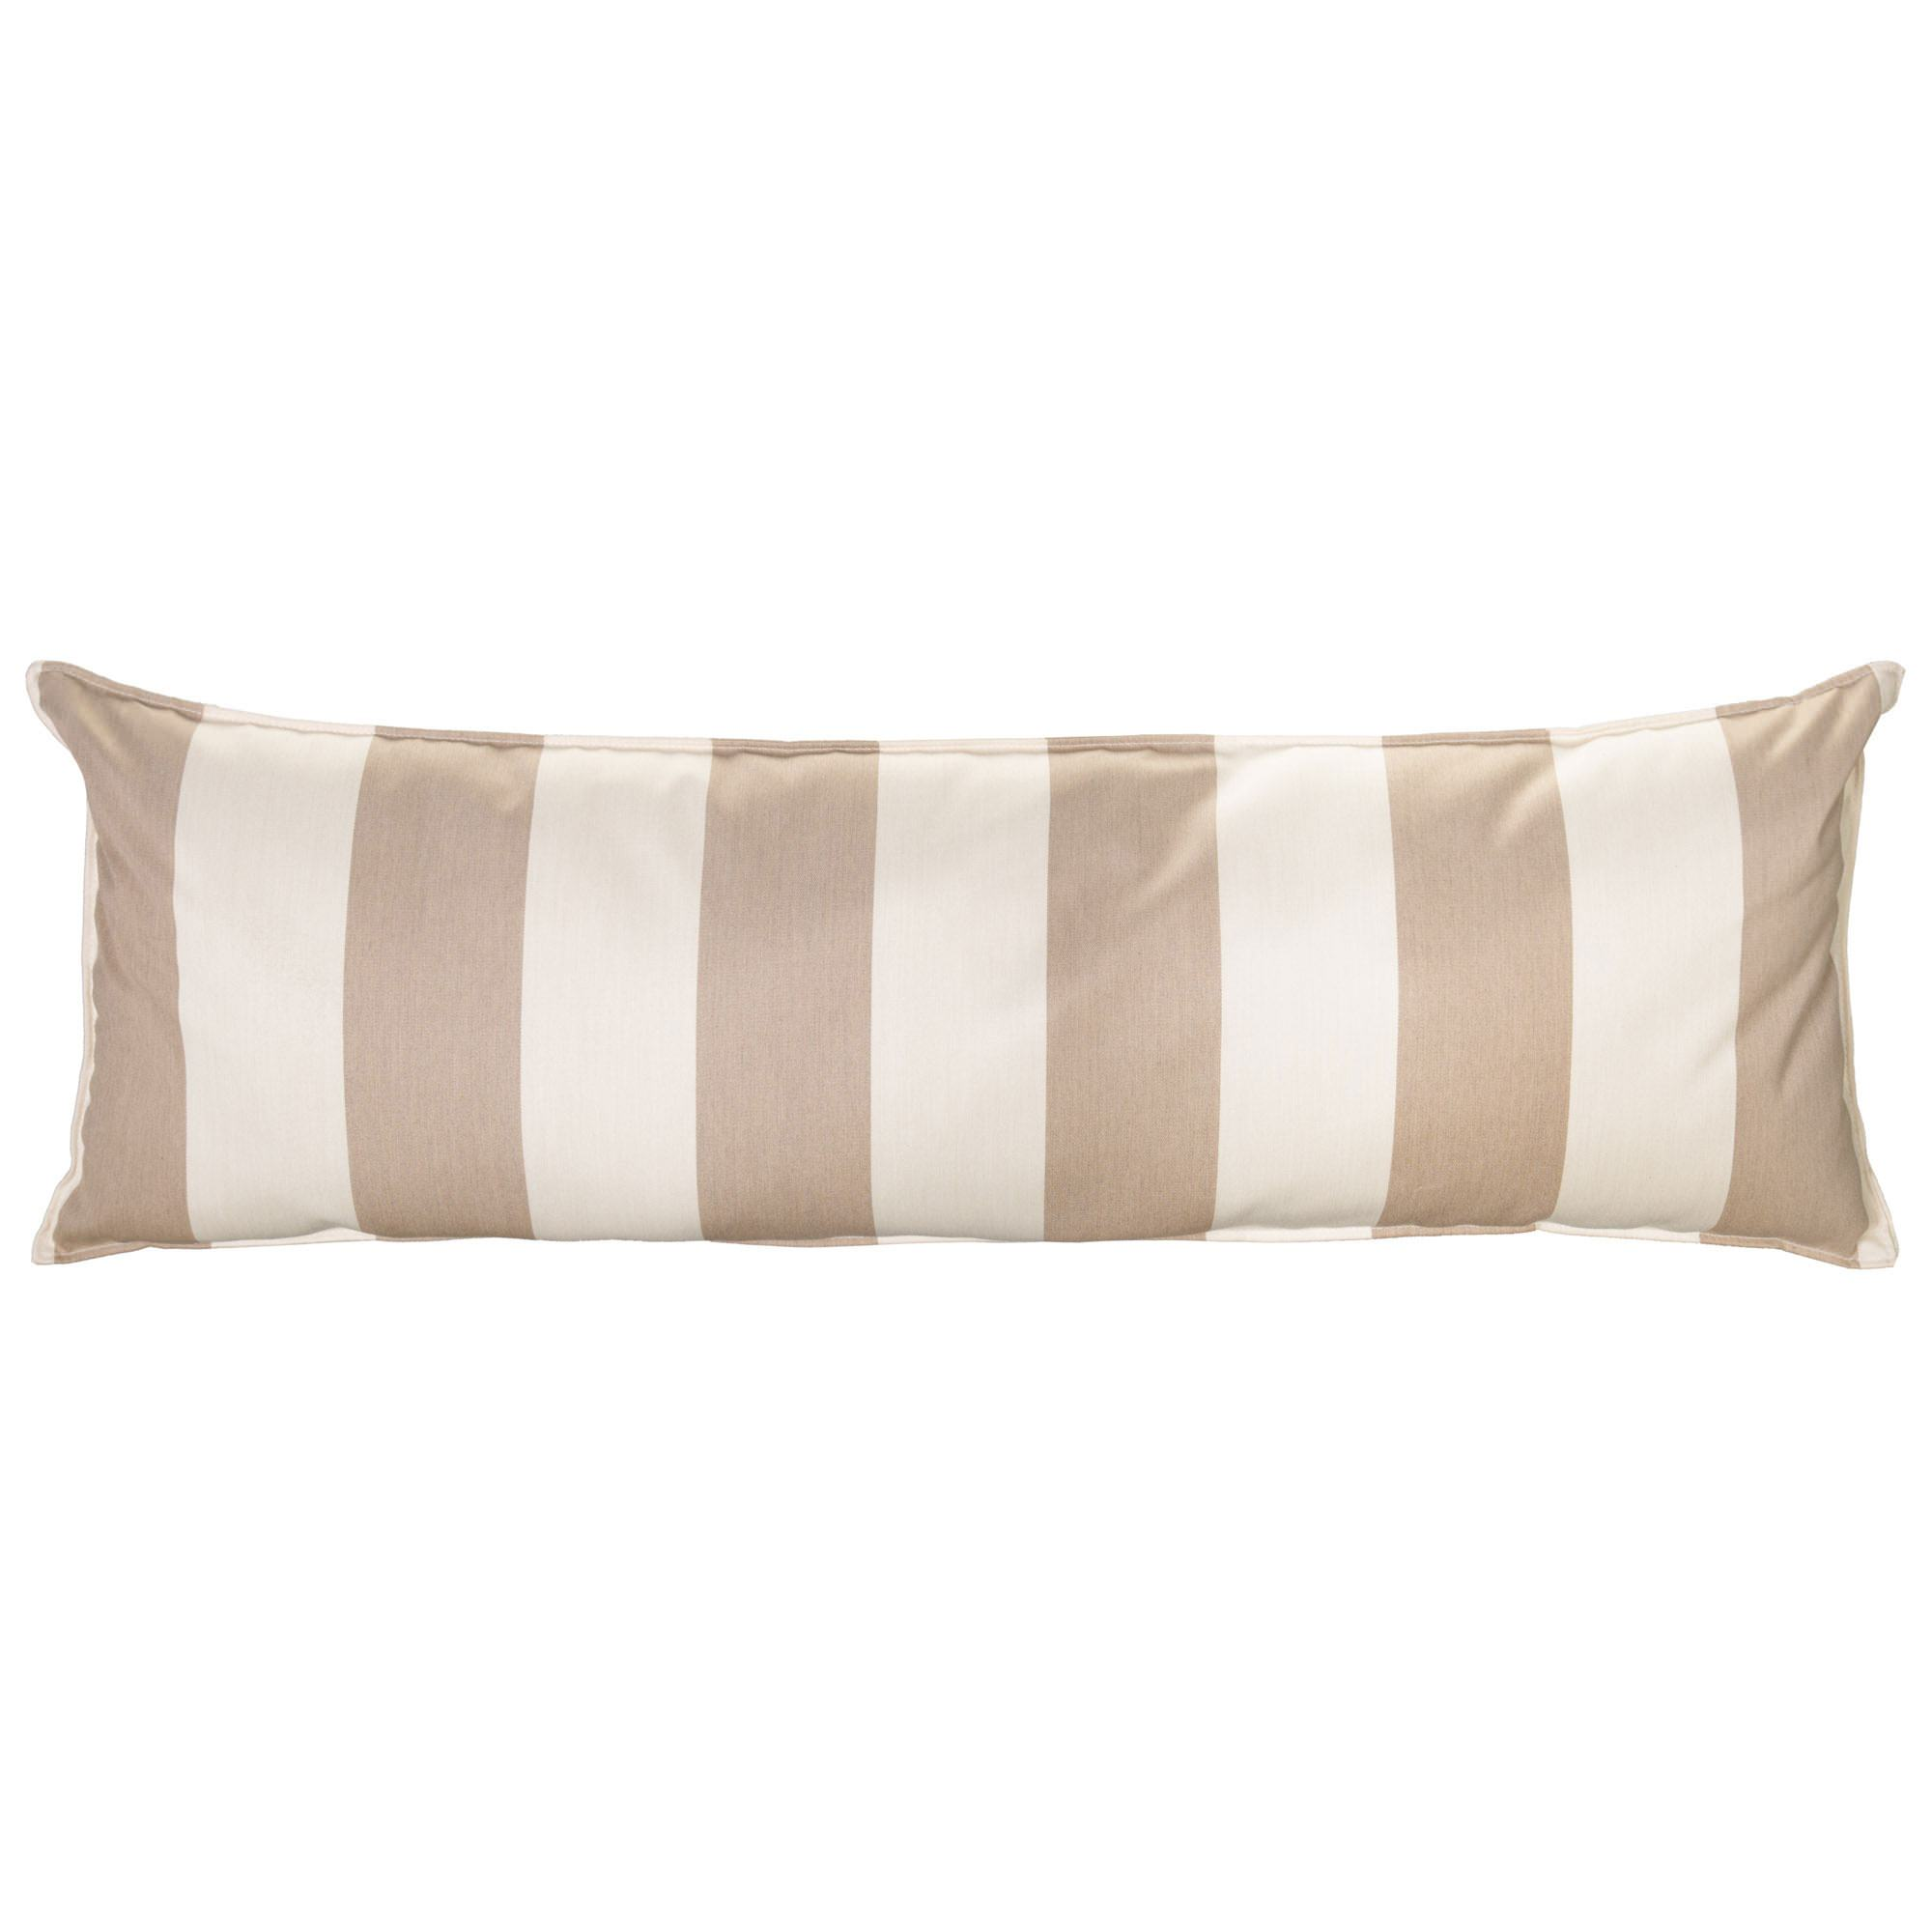 over garden shipping pillow product home on free double pillows hammock inch overstock wide orders